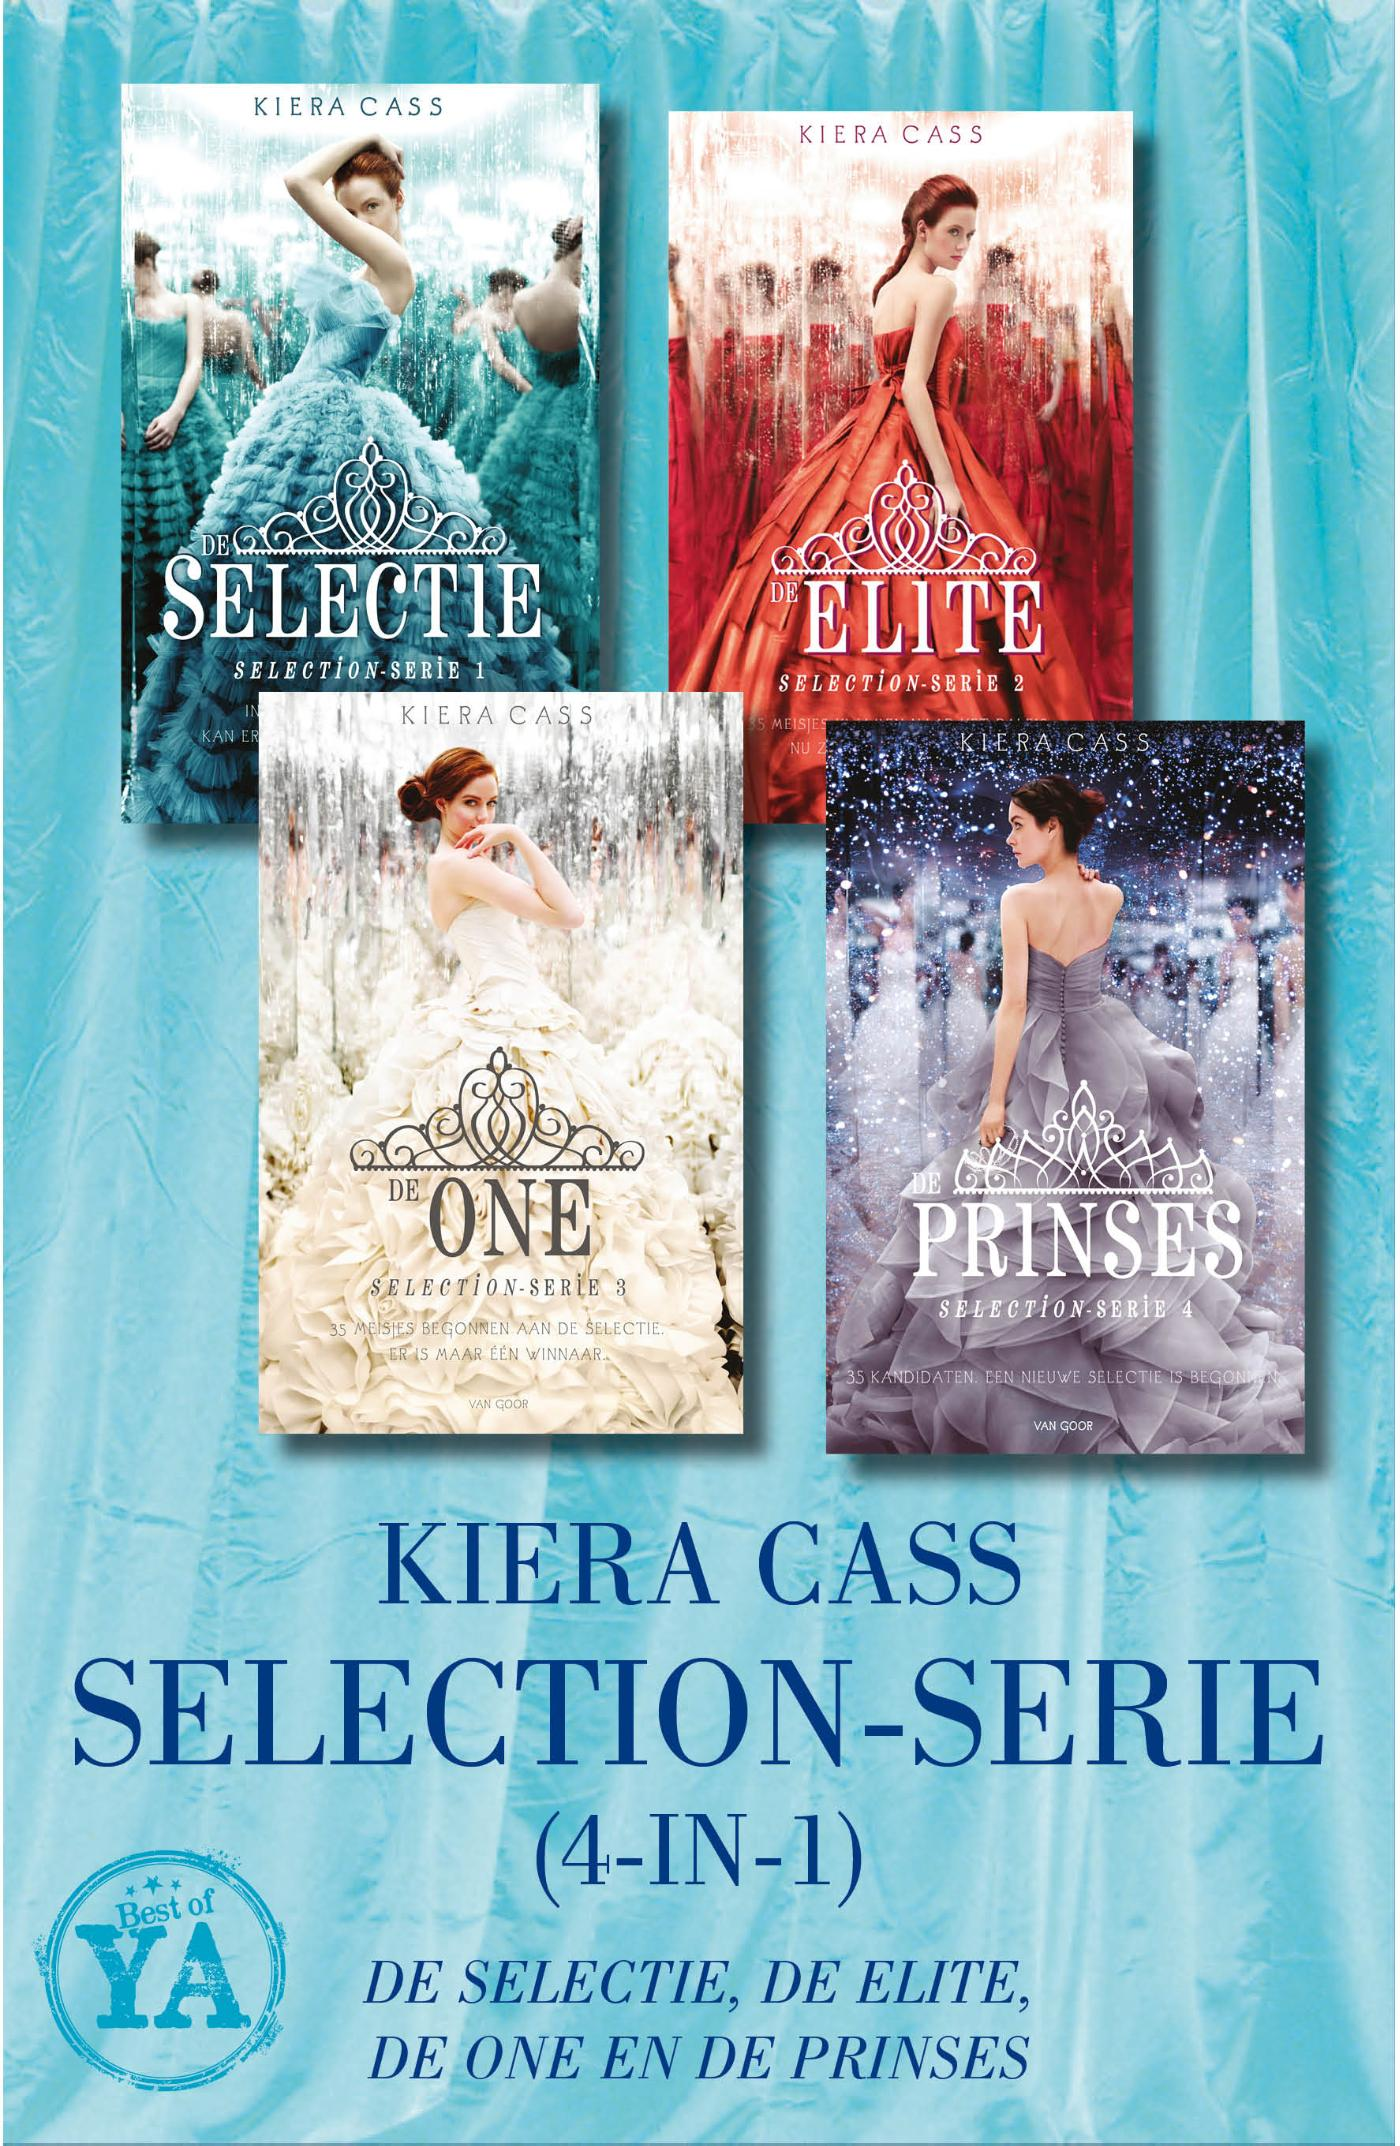 Selection-serie (4-in-1)